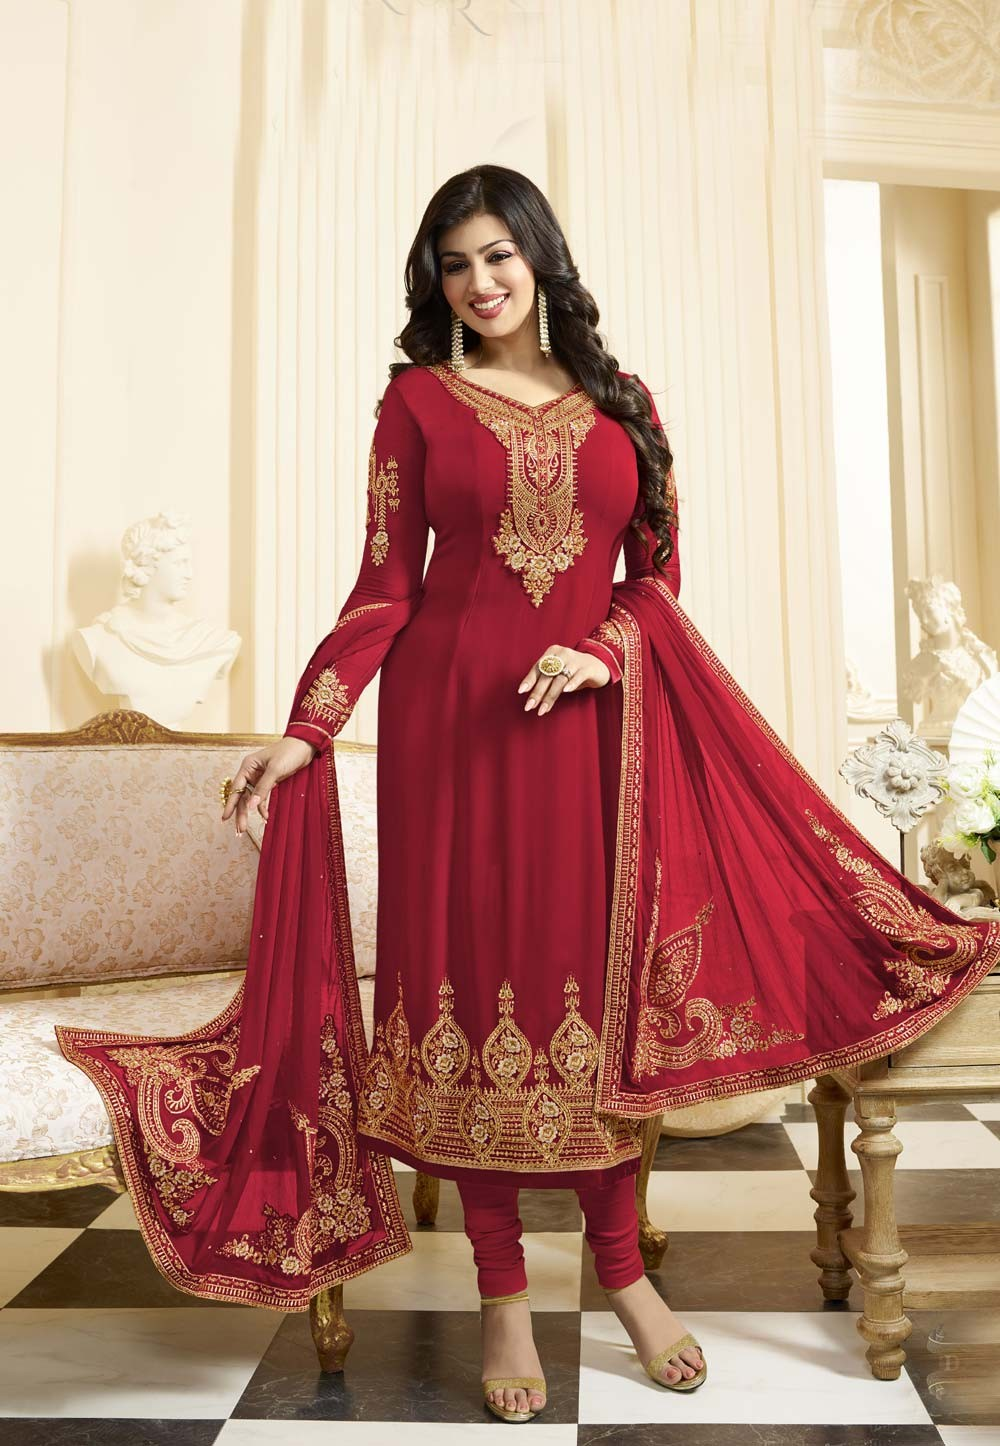 Straight Cut Style Red Color & Georgette Fabric Incredible Salwar Kameez